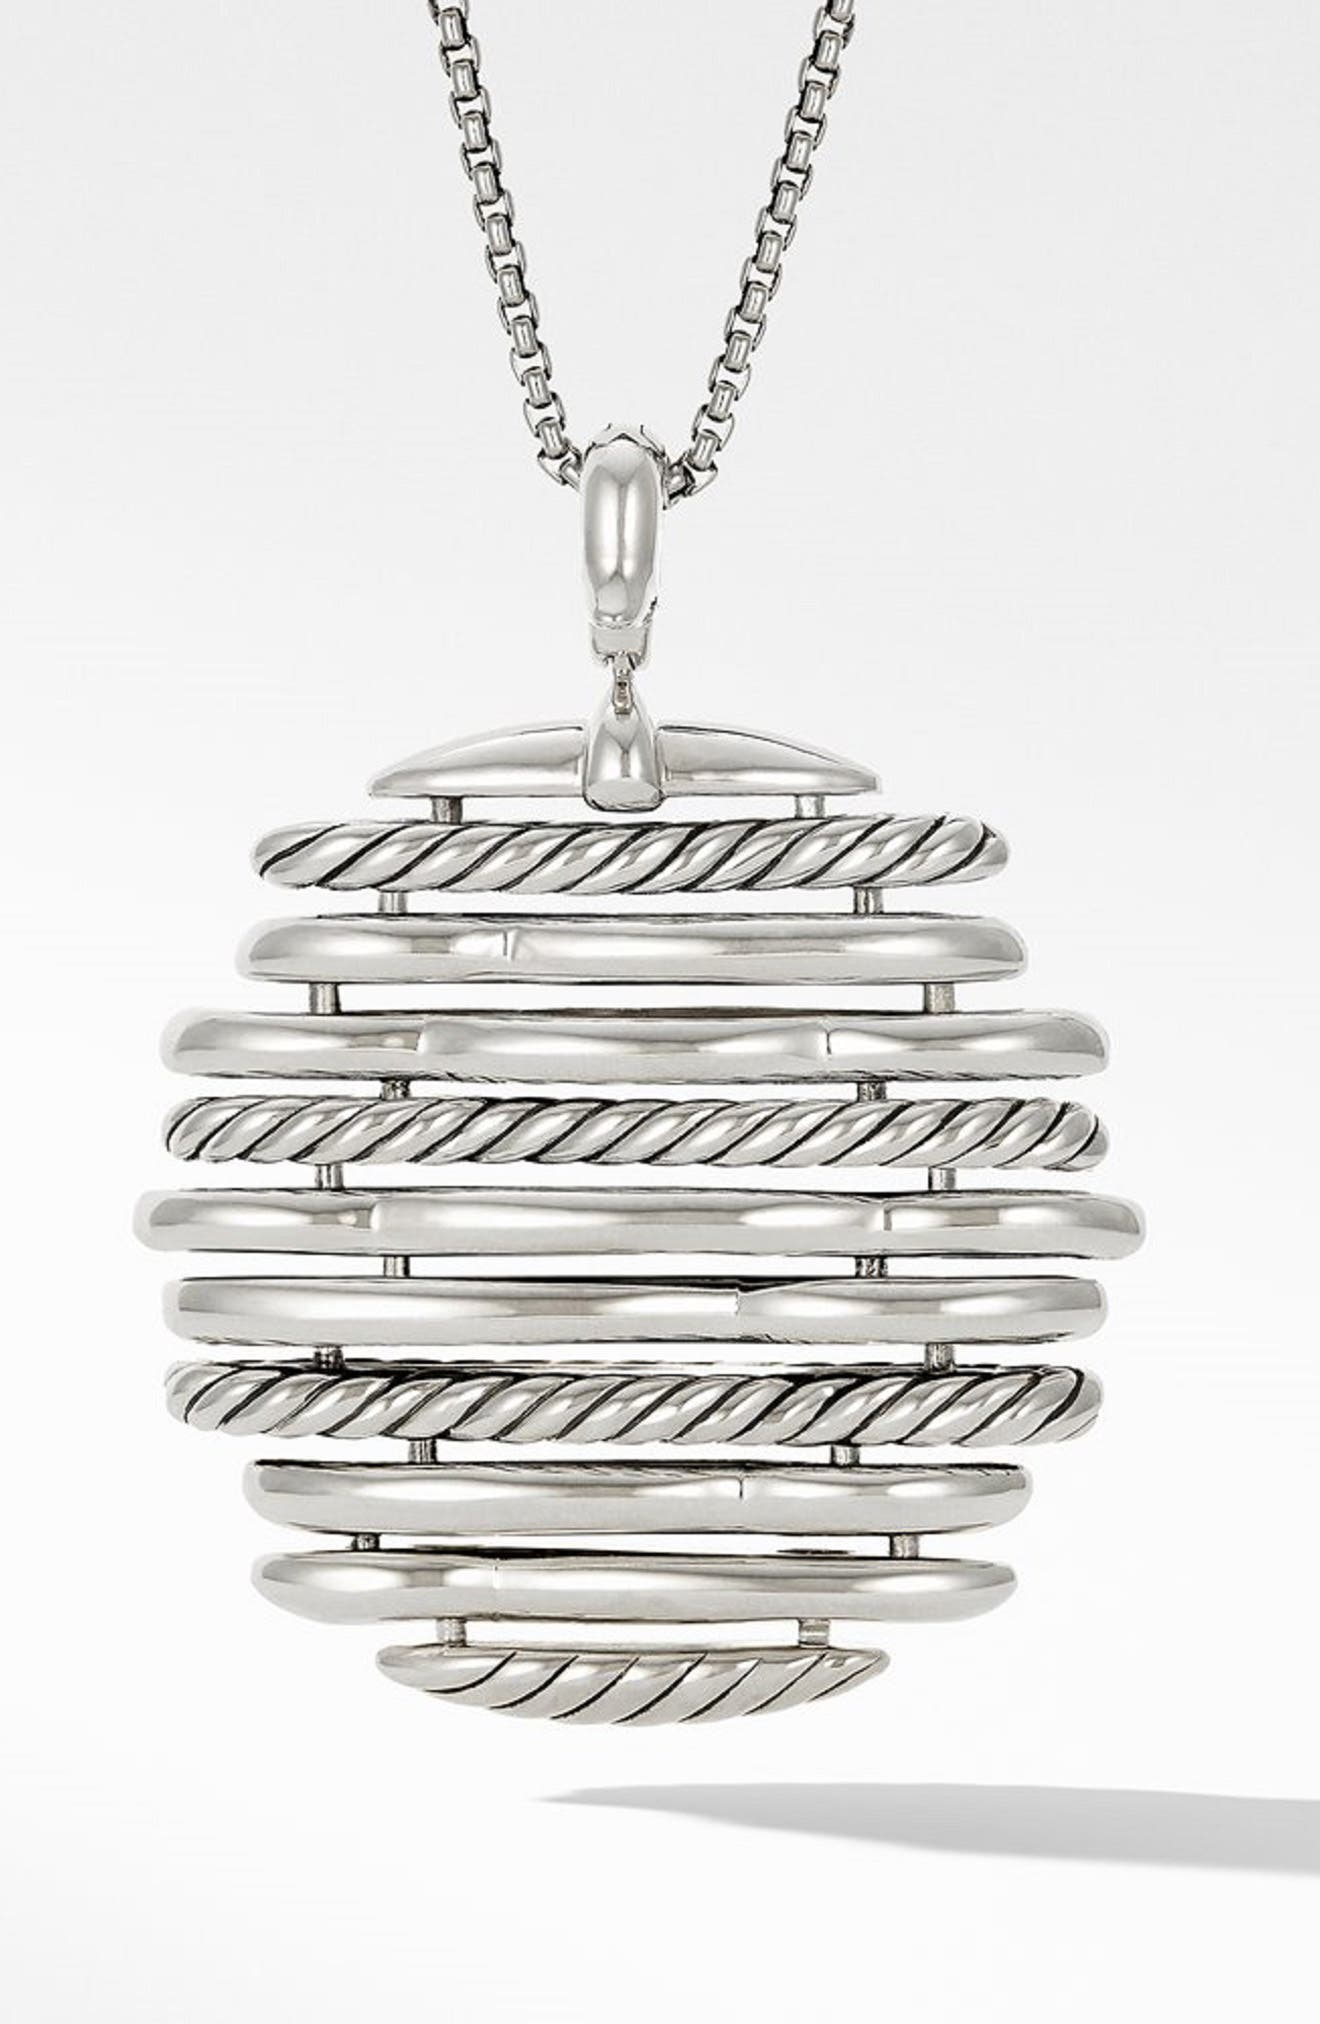 Tides Pendant Necklace with Diamonds,                             Alternate thumbnail 3, color,                             STERLING SILVER/ DIAMOND